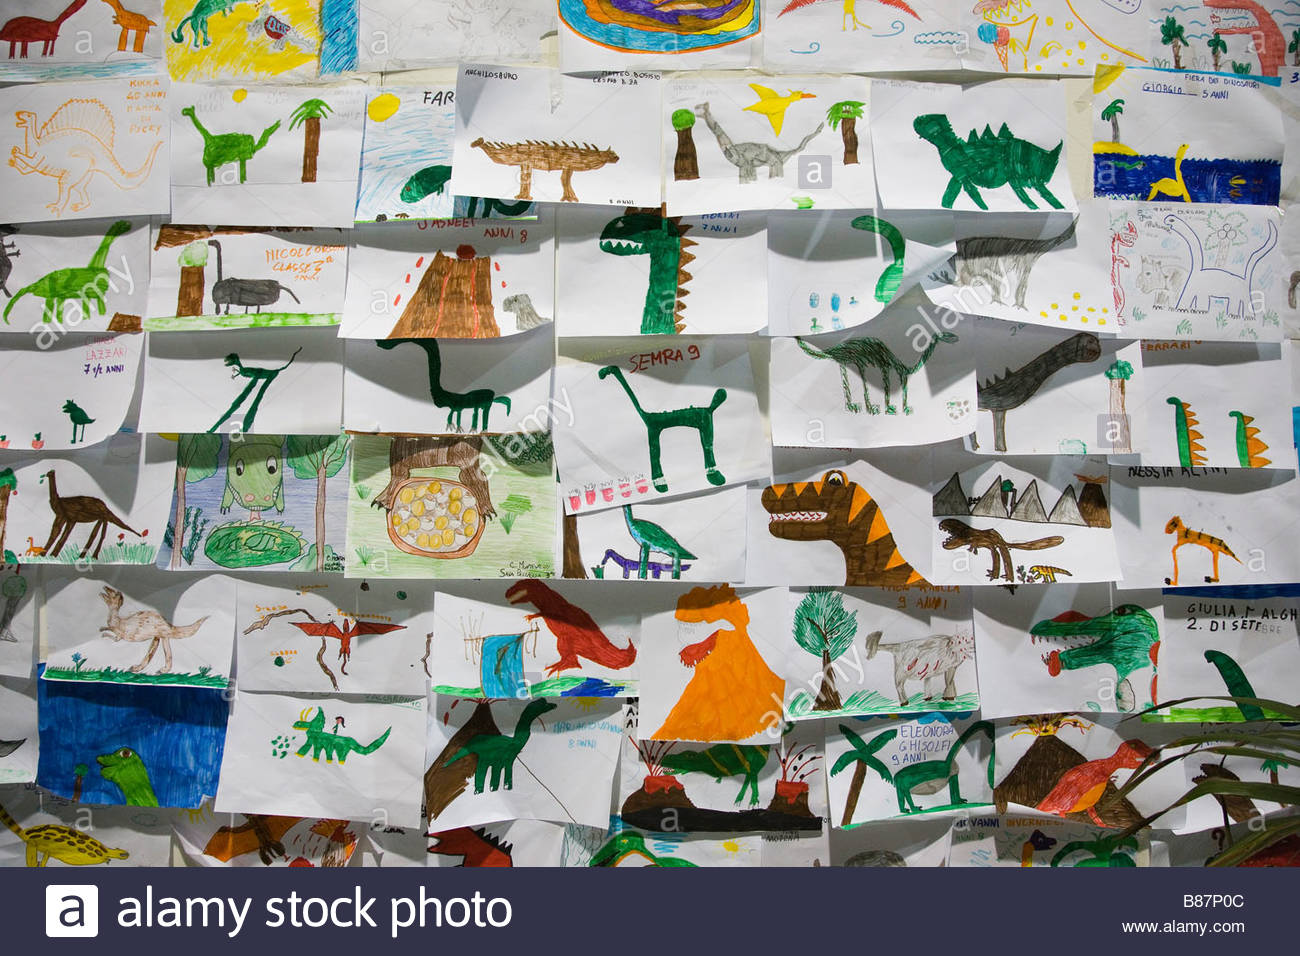 europe,italy,lombardia,cremona,exhibition of reproduction of dinosaurs,drawings by the school children - Stock Image